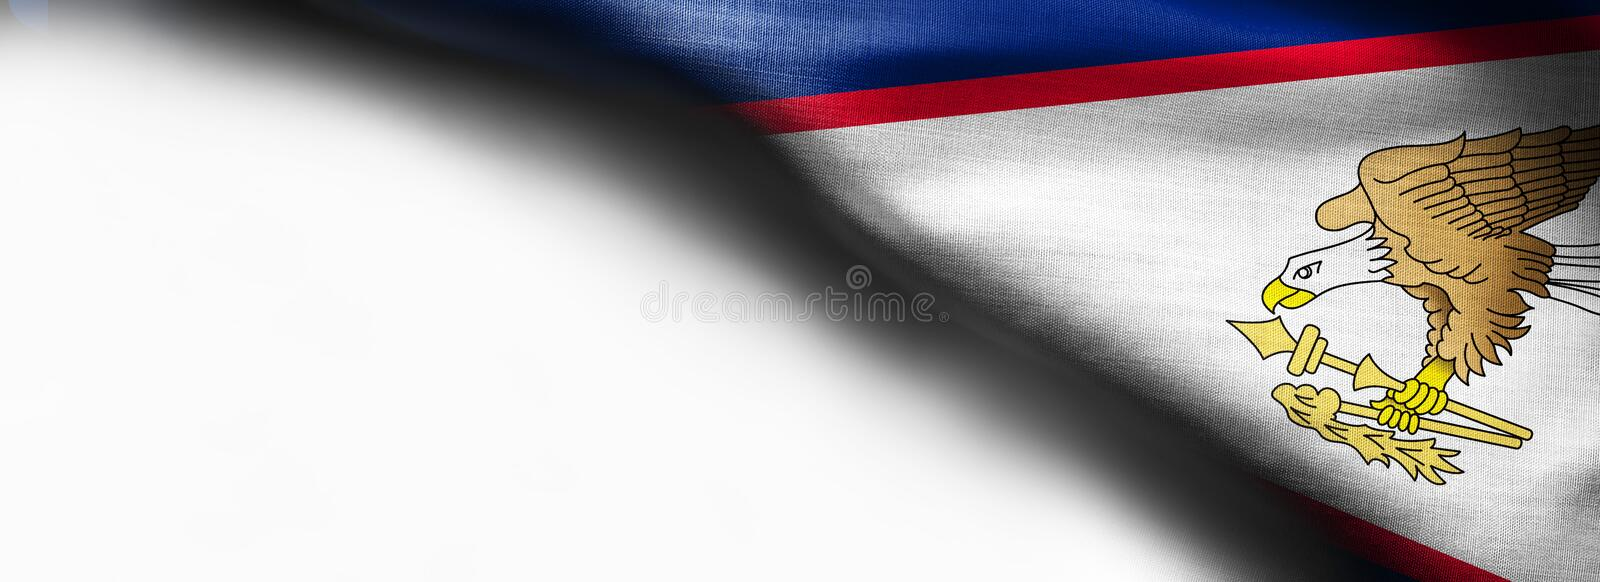 A Flag of American Samoa - flag on white background - right top corner - free copy space. Fabric texture royalty free stock photo